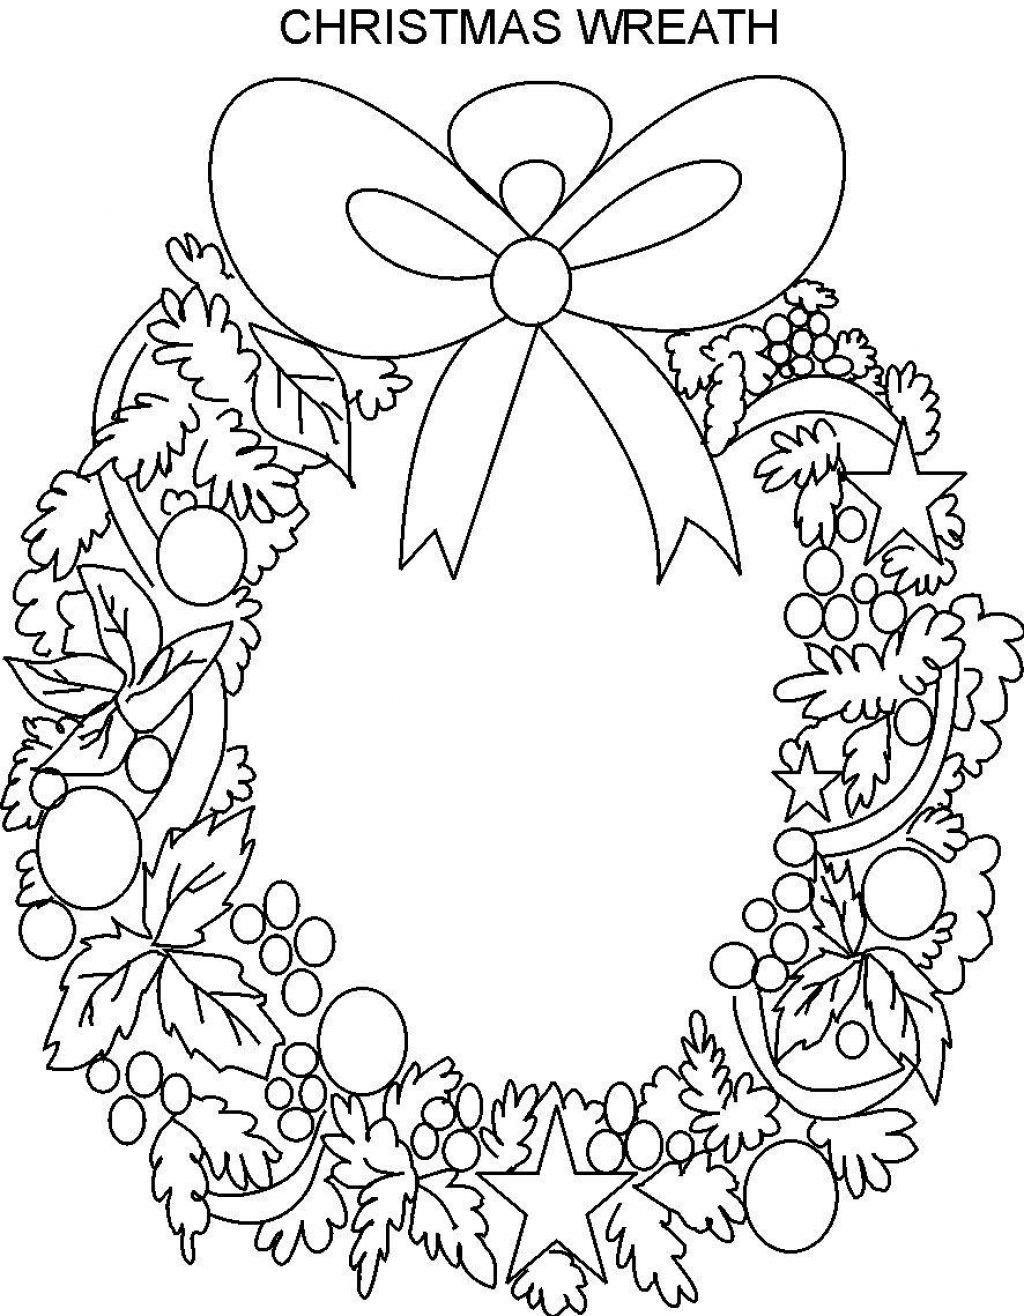 Christmas Wreath Coloring Printable | COLORING PAGES | CHRISTMAS ...